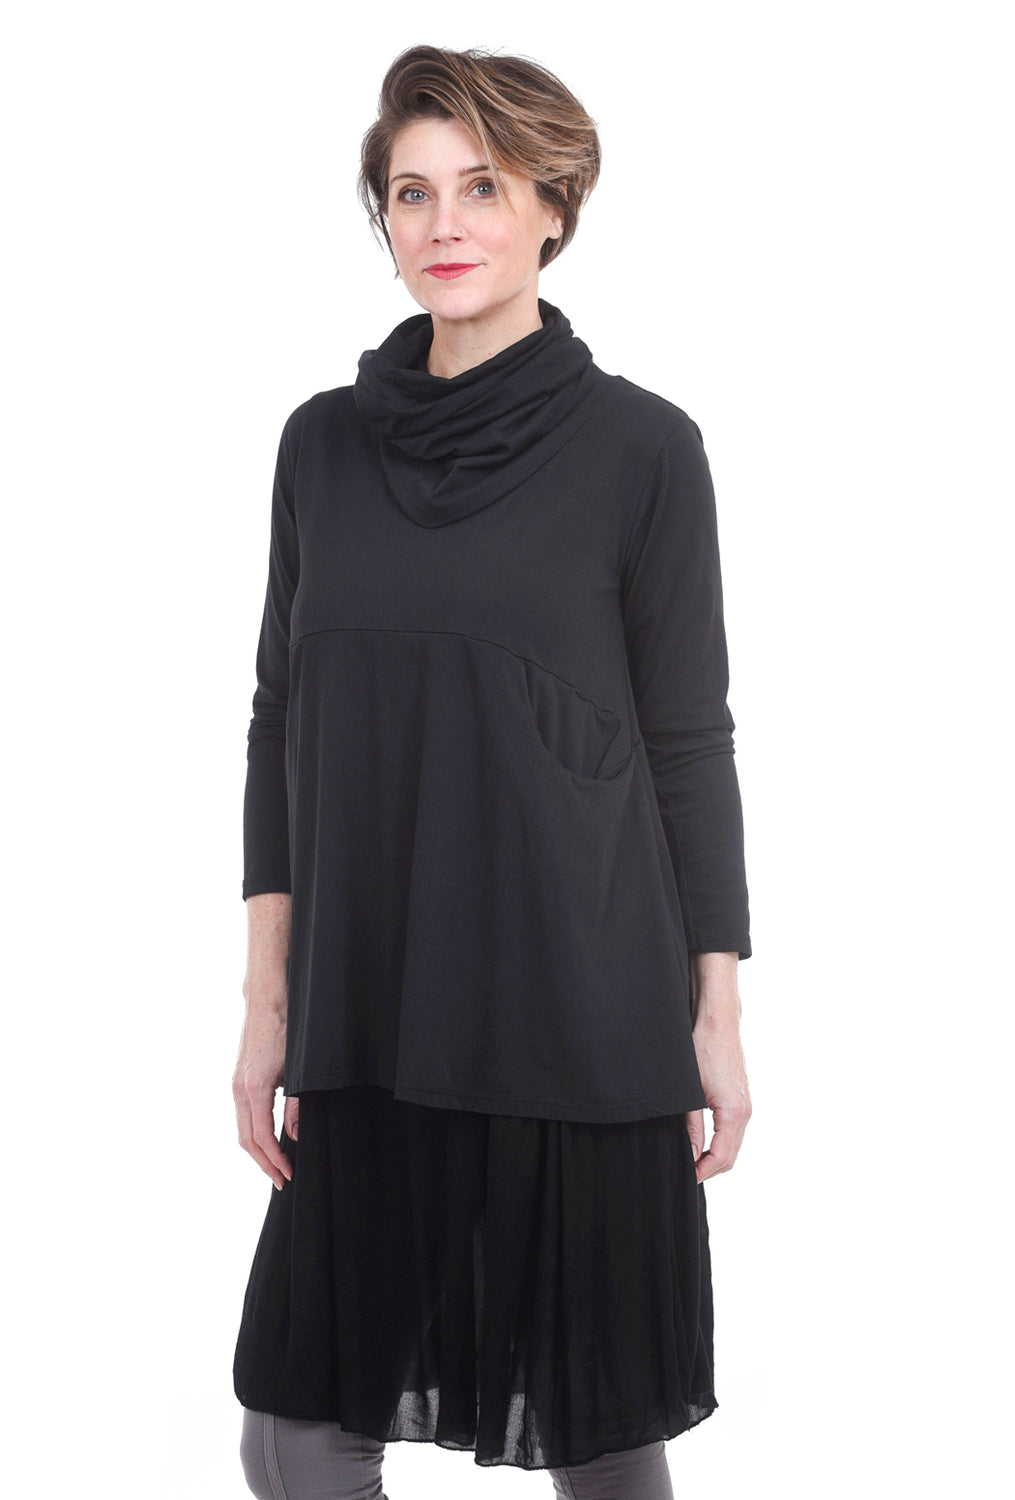 Oro Bonito Double-Layer Cowl Dress, Black One Size Black